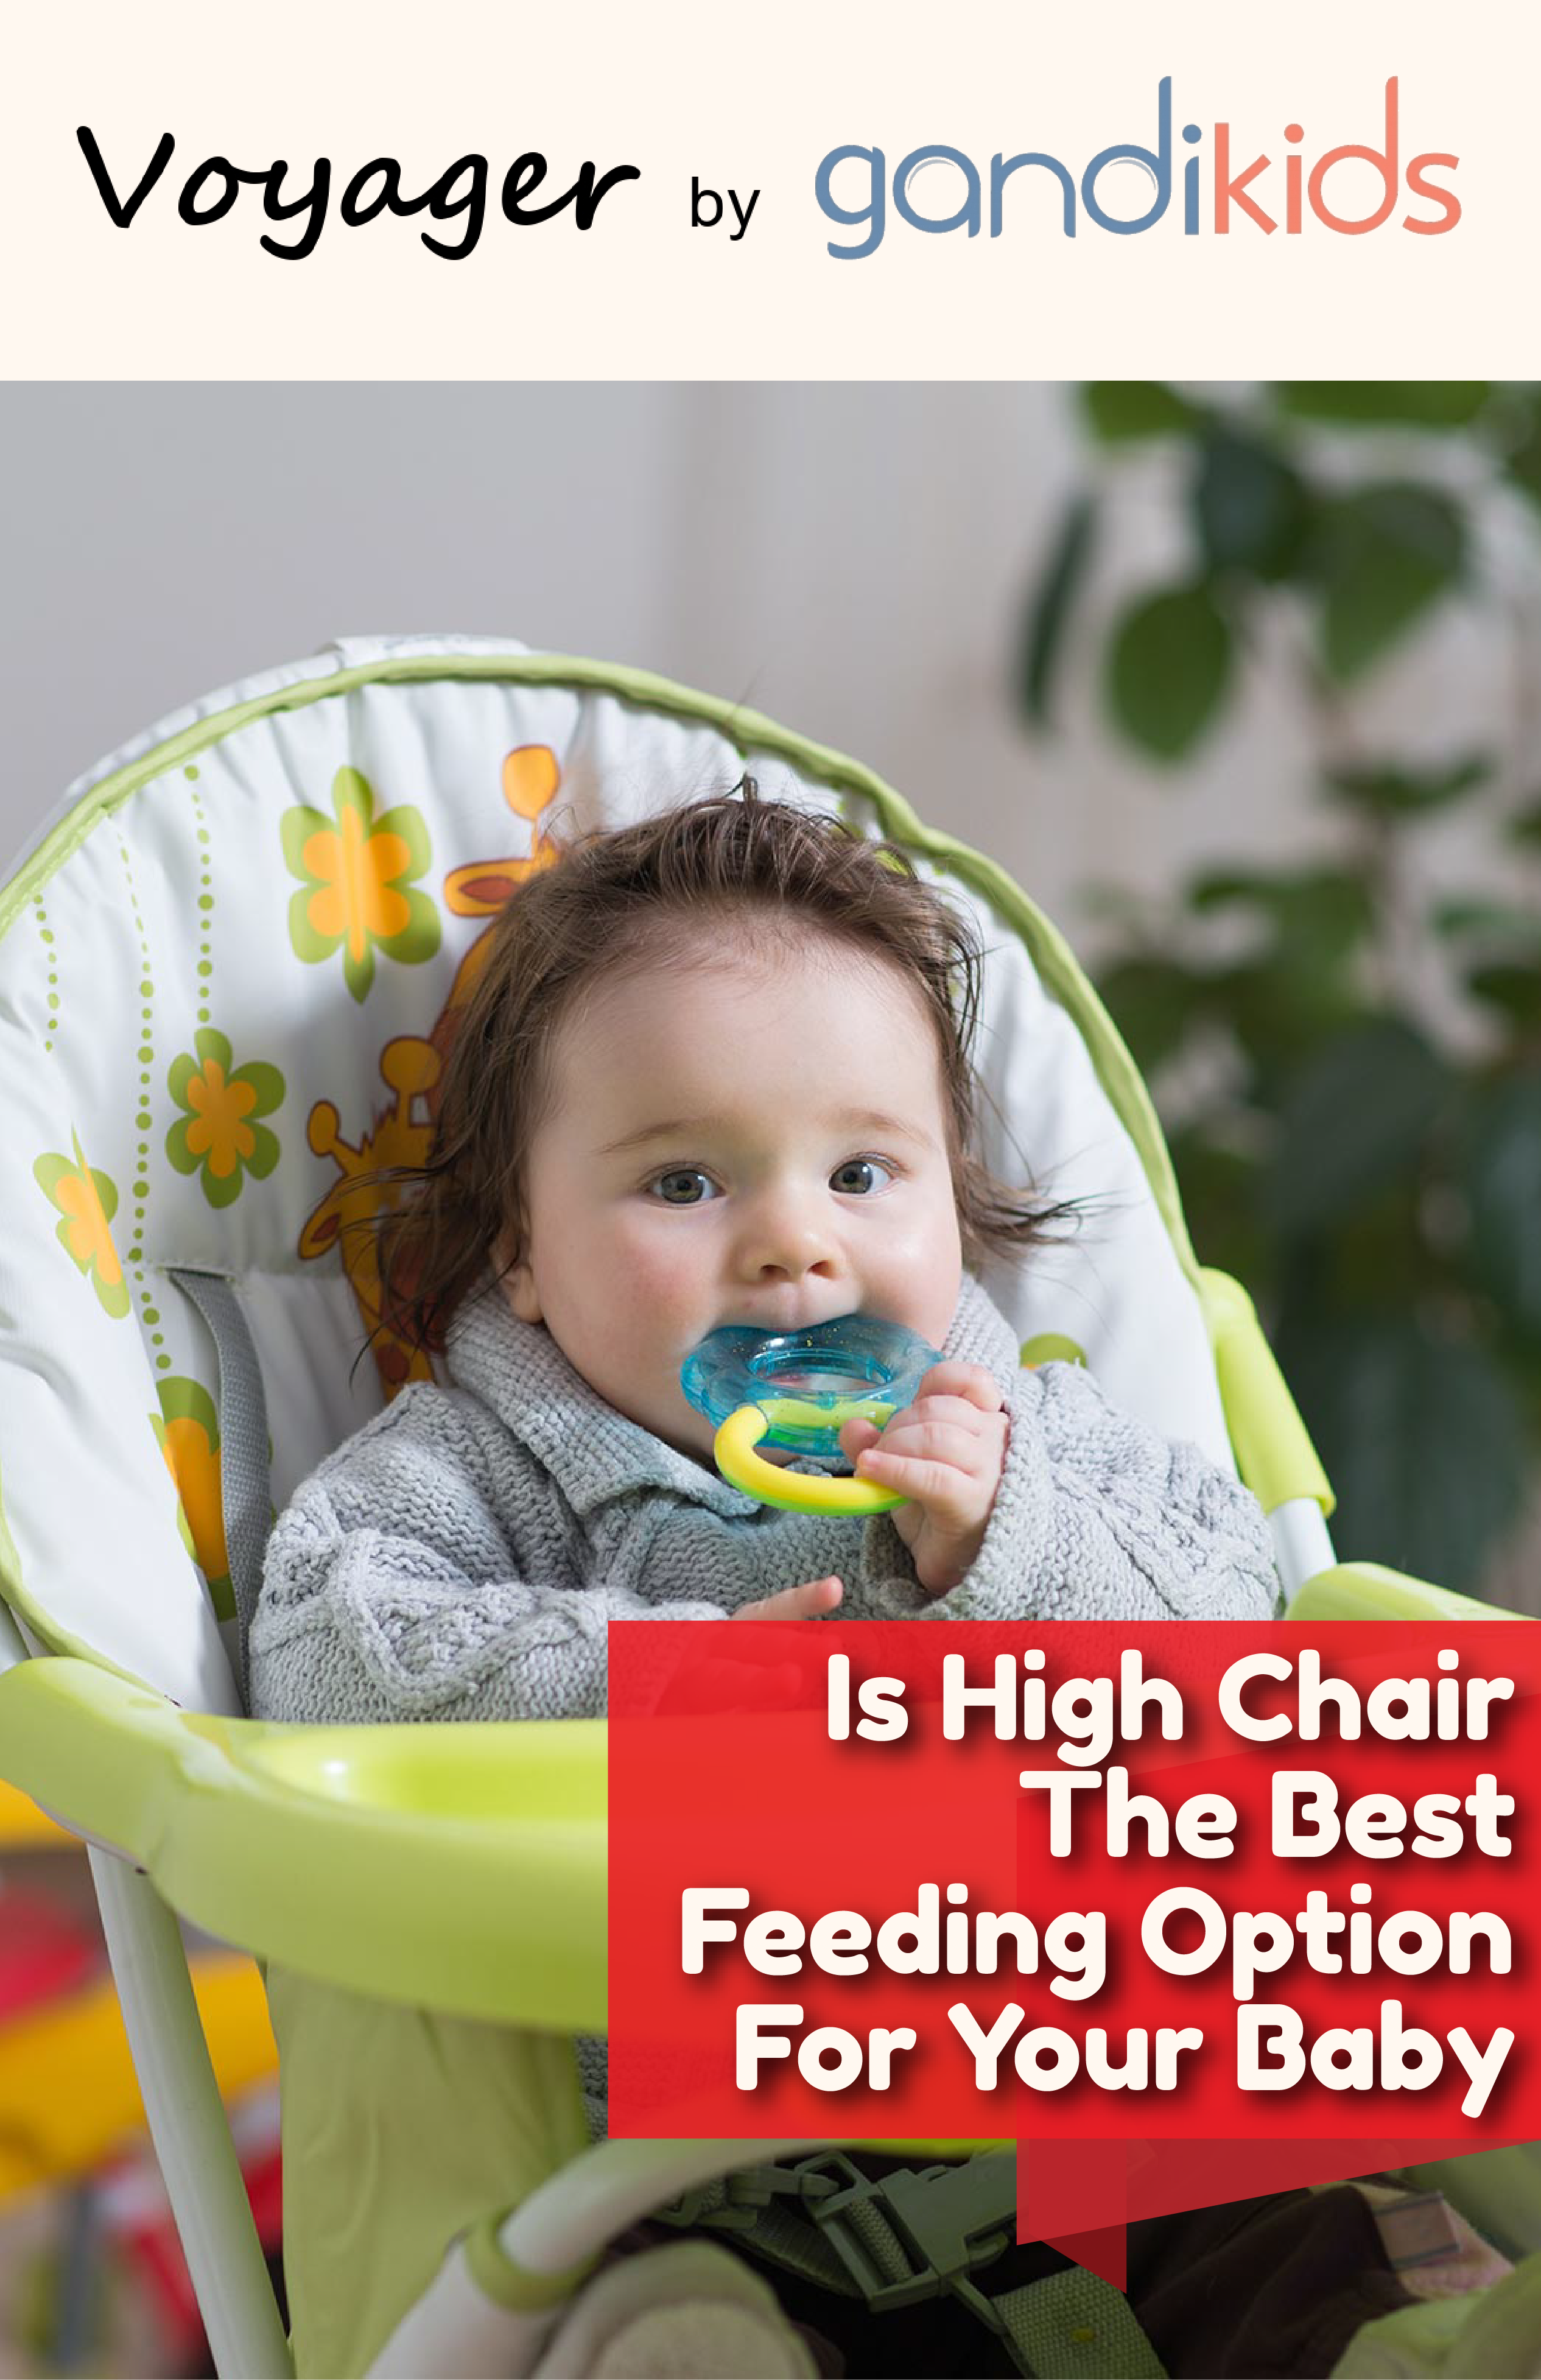 Is High Chair the best feeding option for your baby in